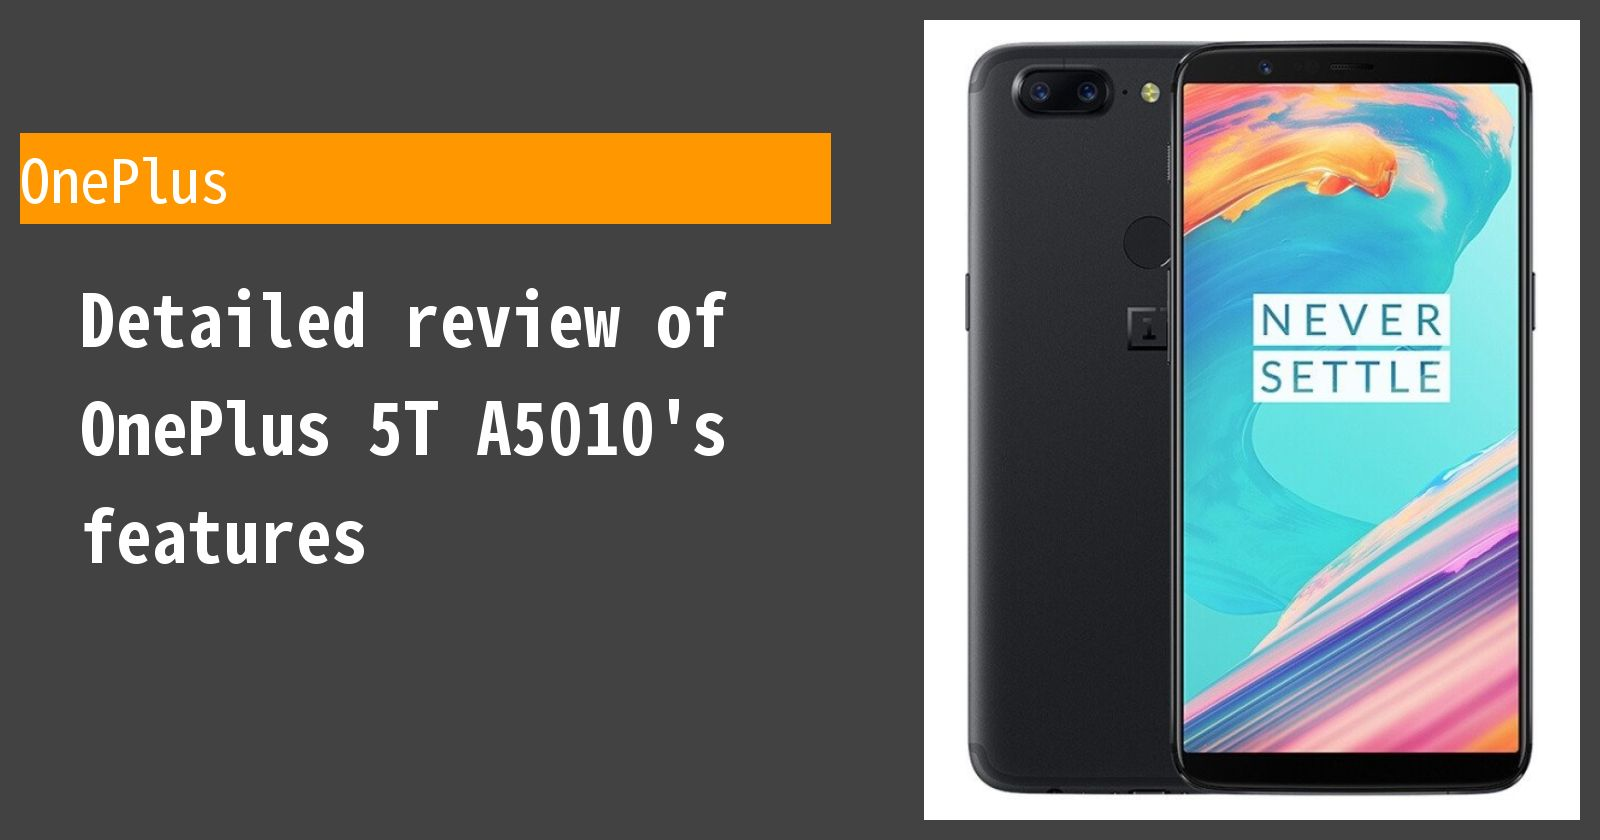 Detailed review of OnePlus 5T A5010's features